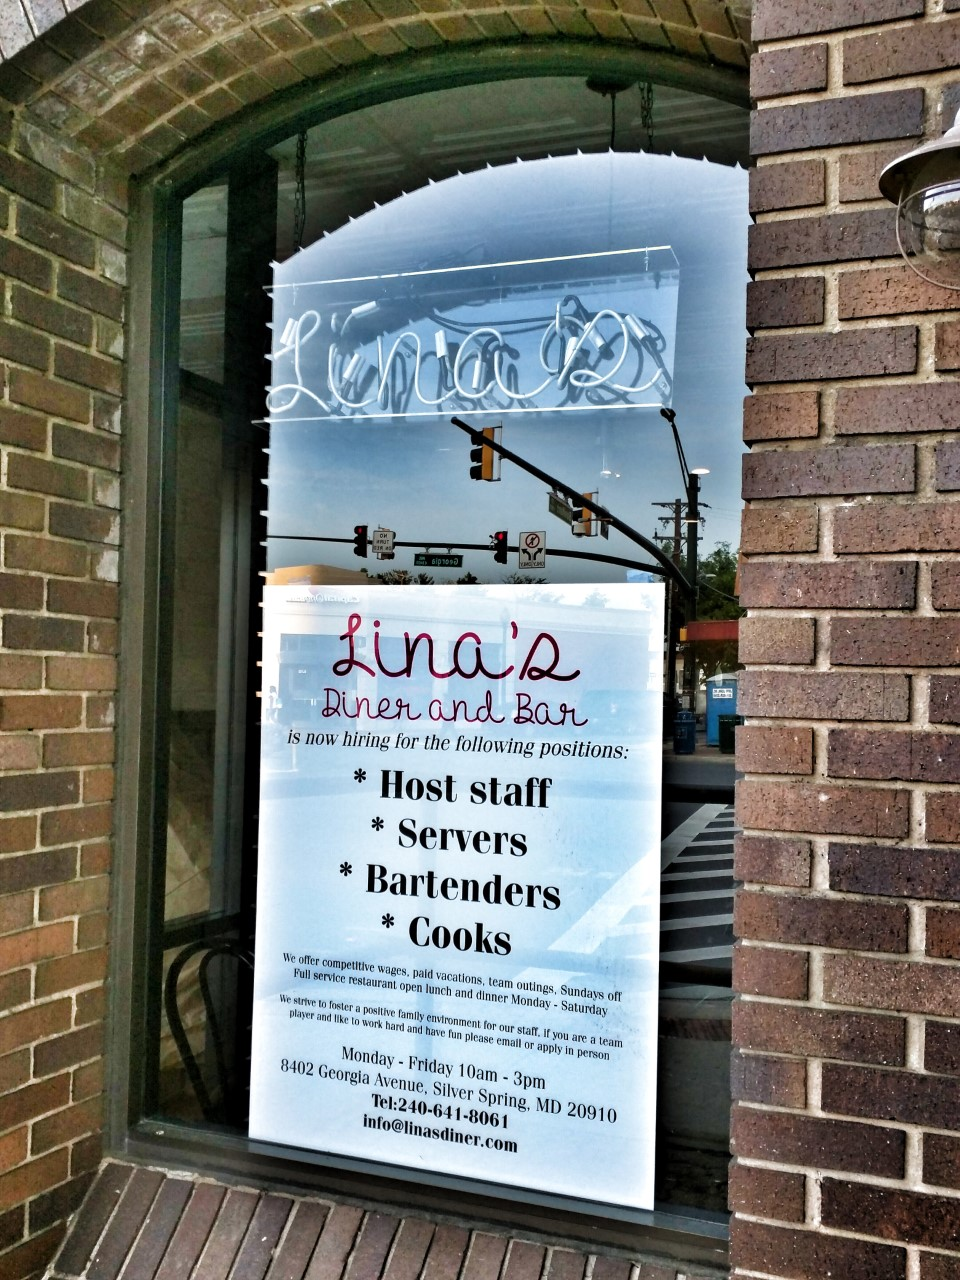 east moco: lina's diner and bar opens in downtown silver spring